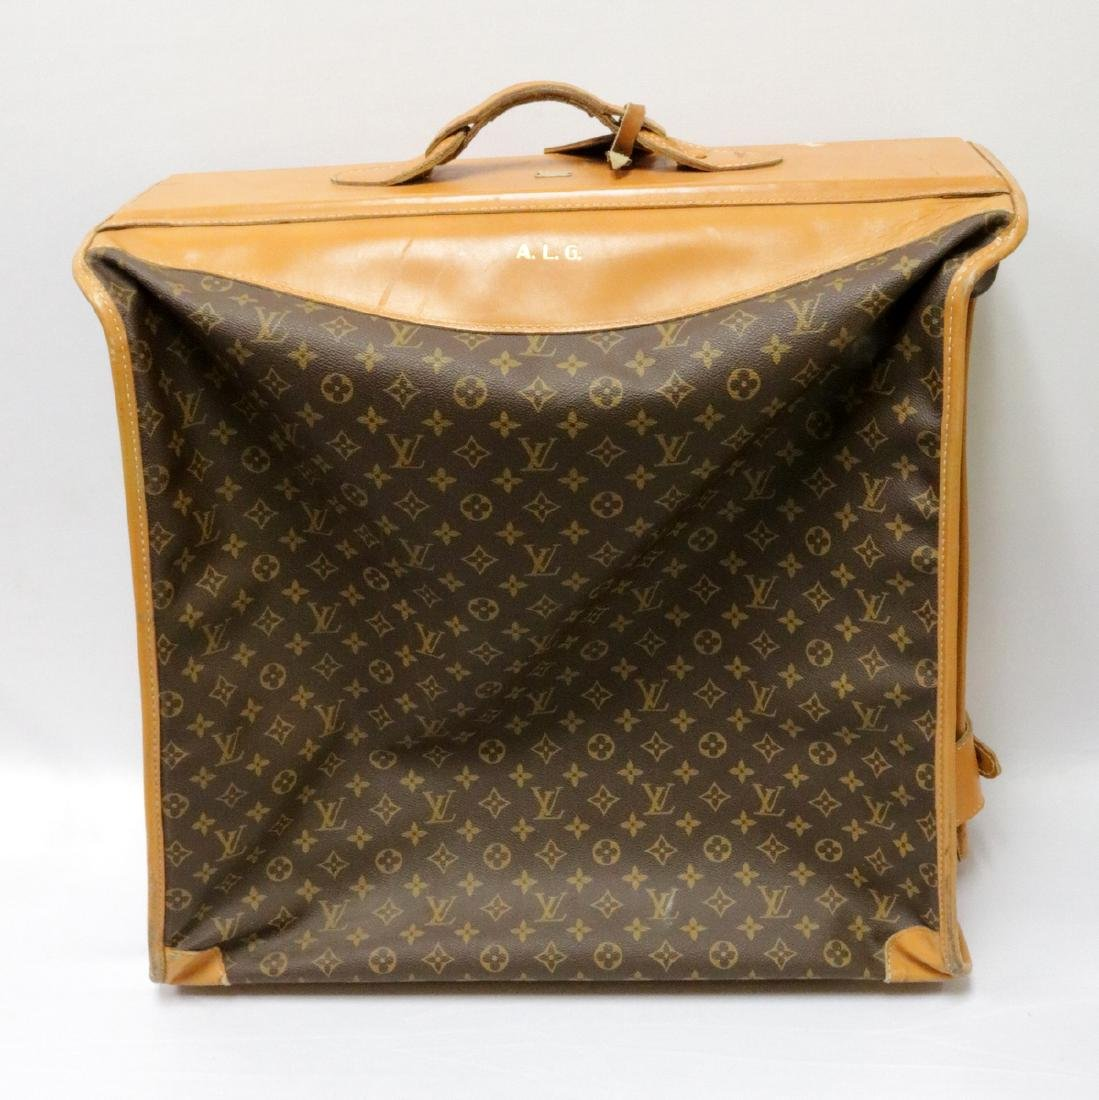 Vintage Louis Vuitton Garment Travel Bag